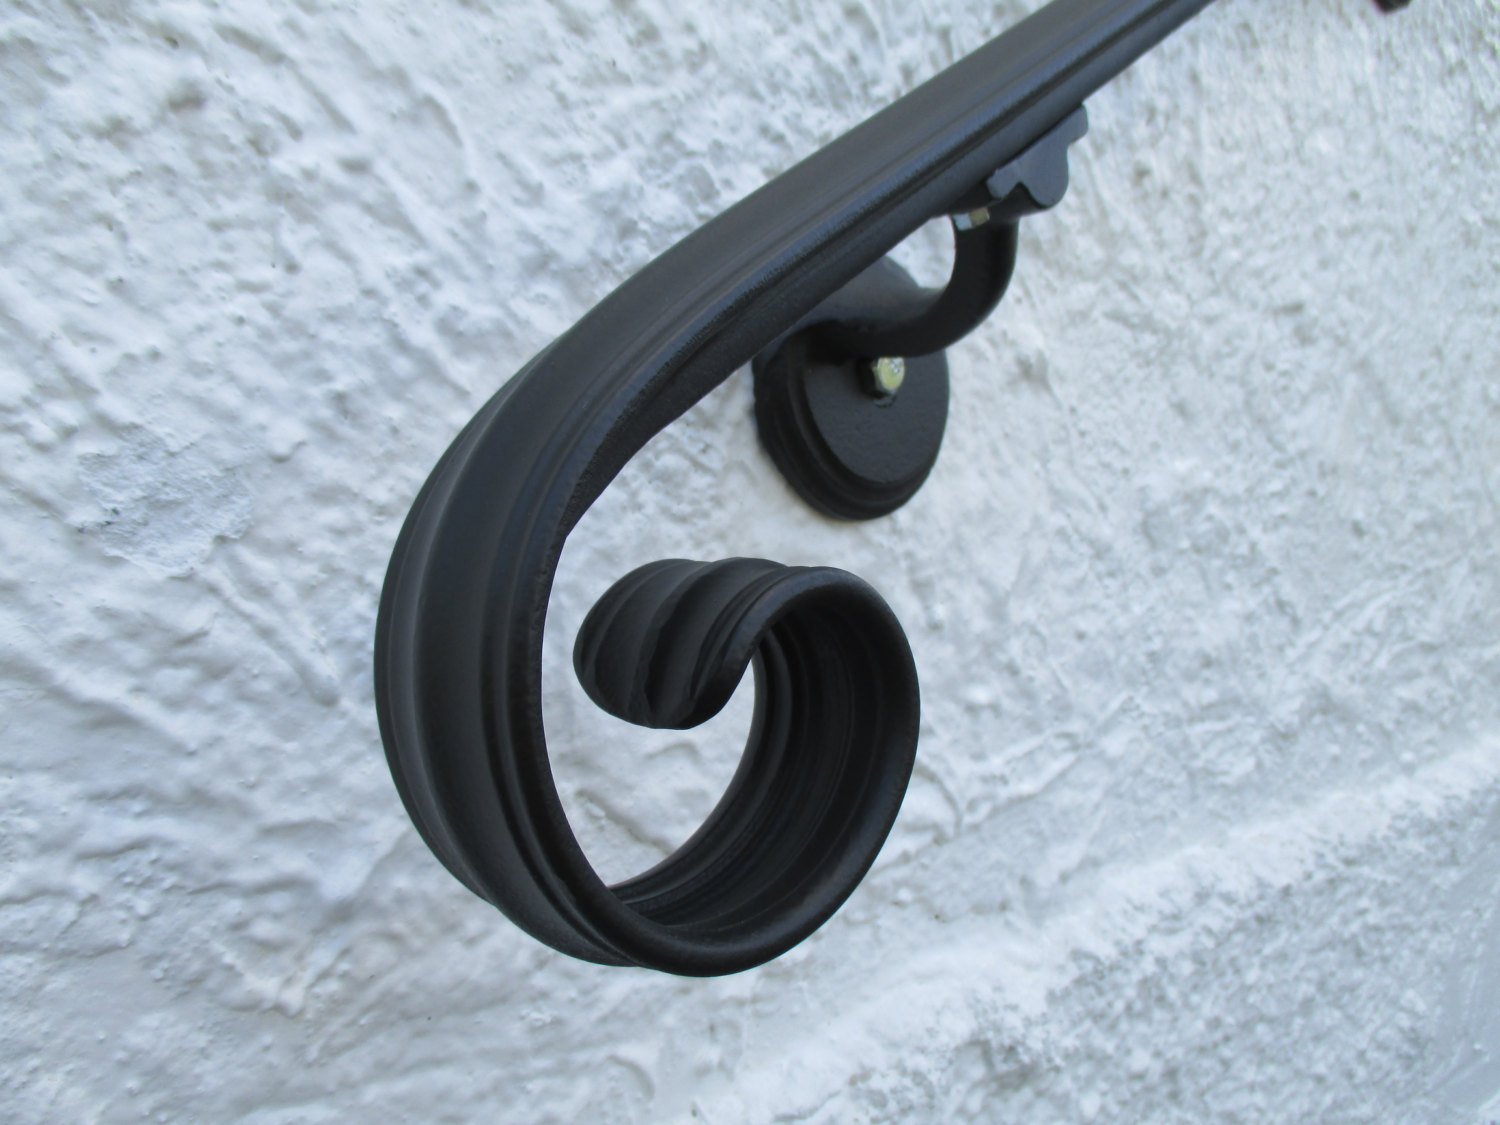 12 Ft Wrought Iron Wall Mount Hand Rail Elegant Scroll Design Interior Or Exterior The Ironsmith